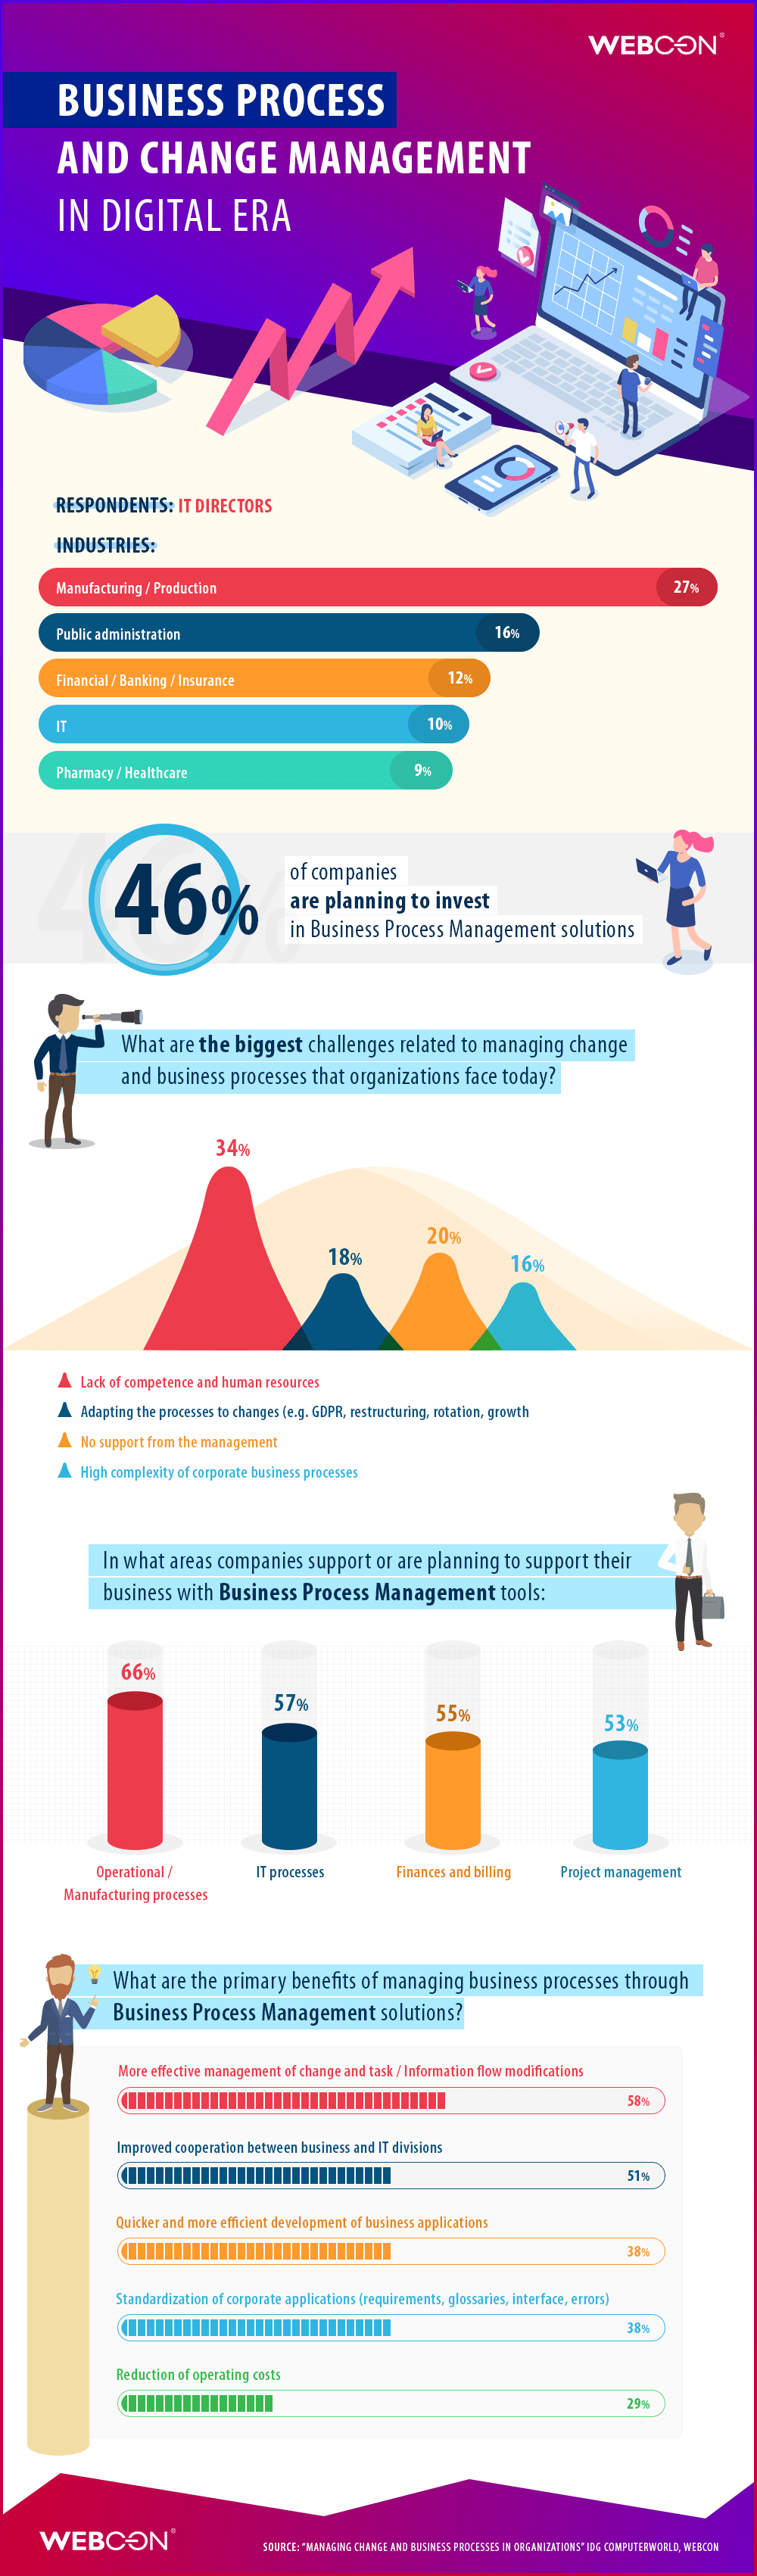 WEBCON Business Process Change Management infographic